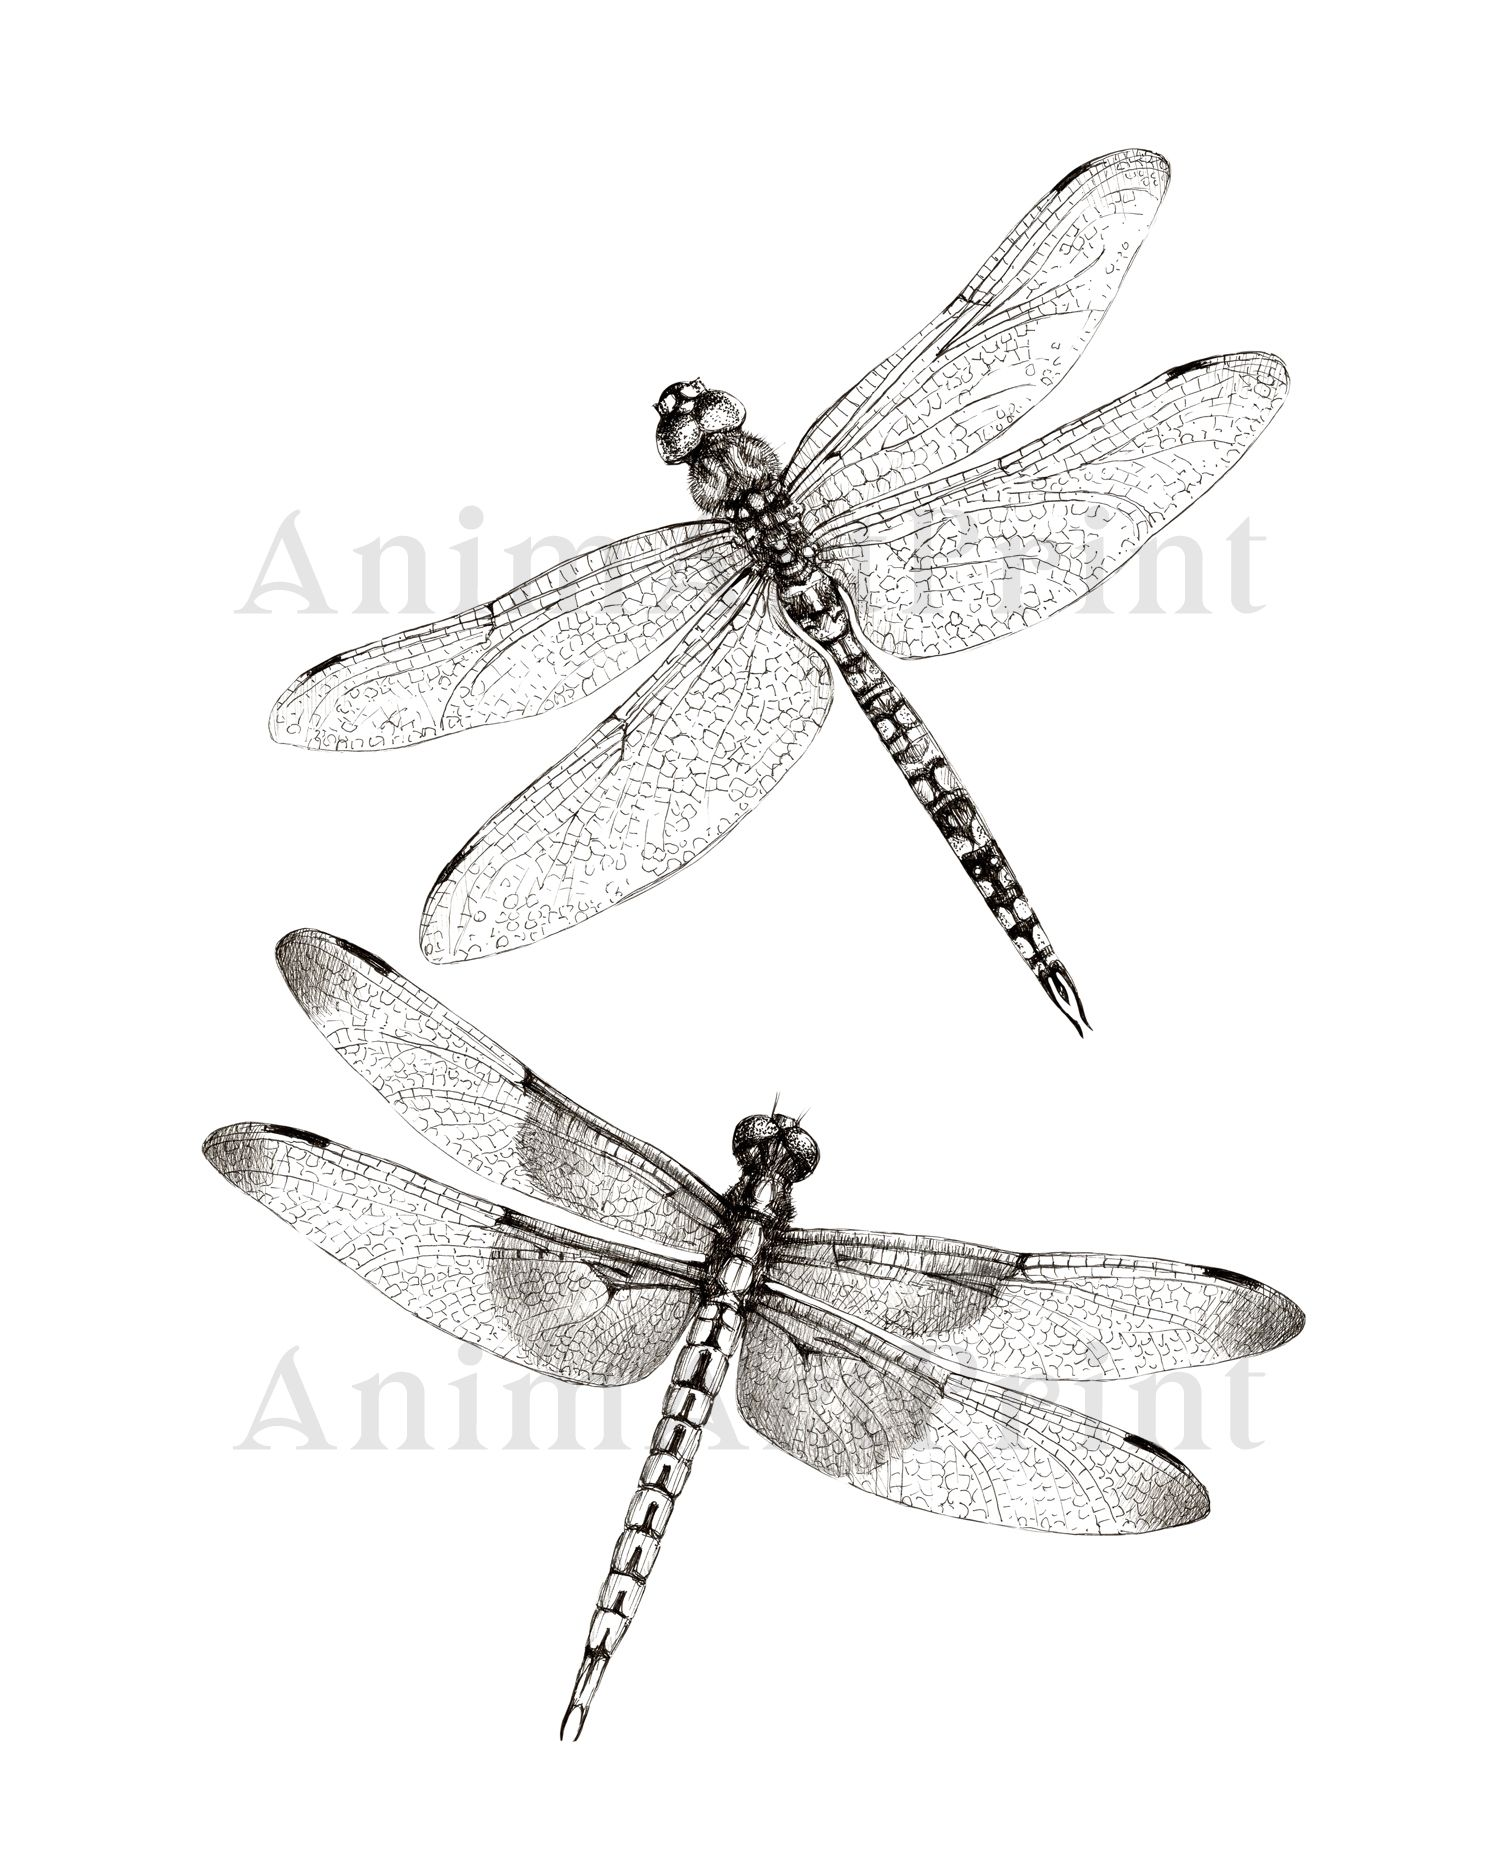 Dragonfly Sketch Black And White Print Two Dragonflies Flying